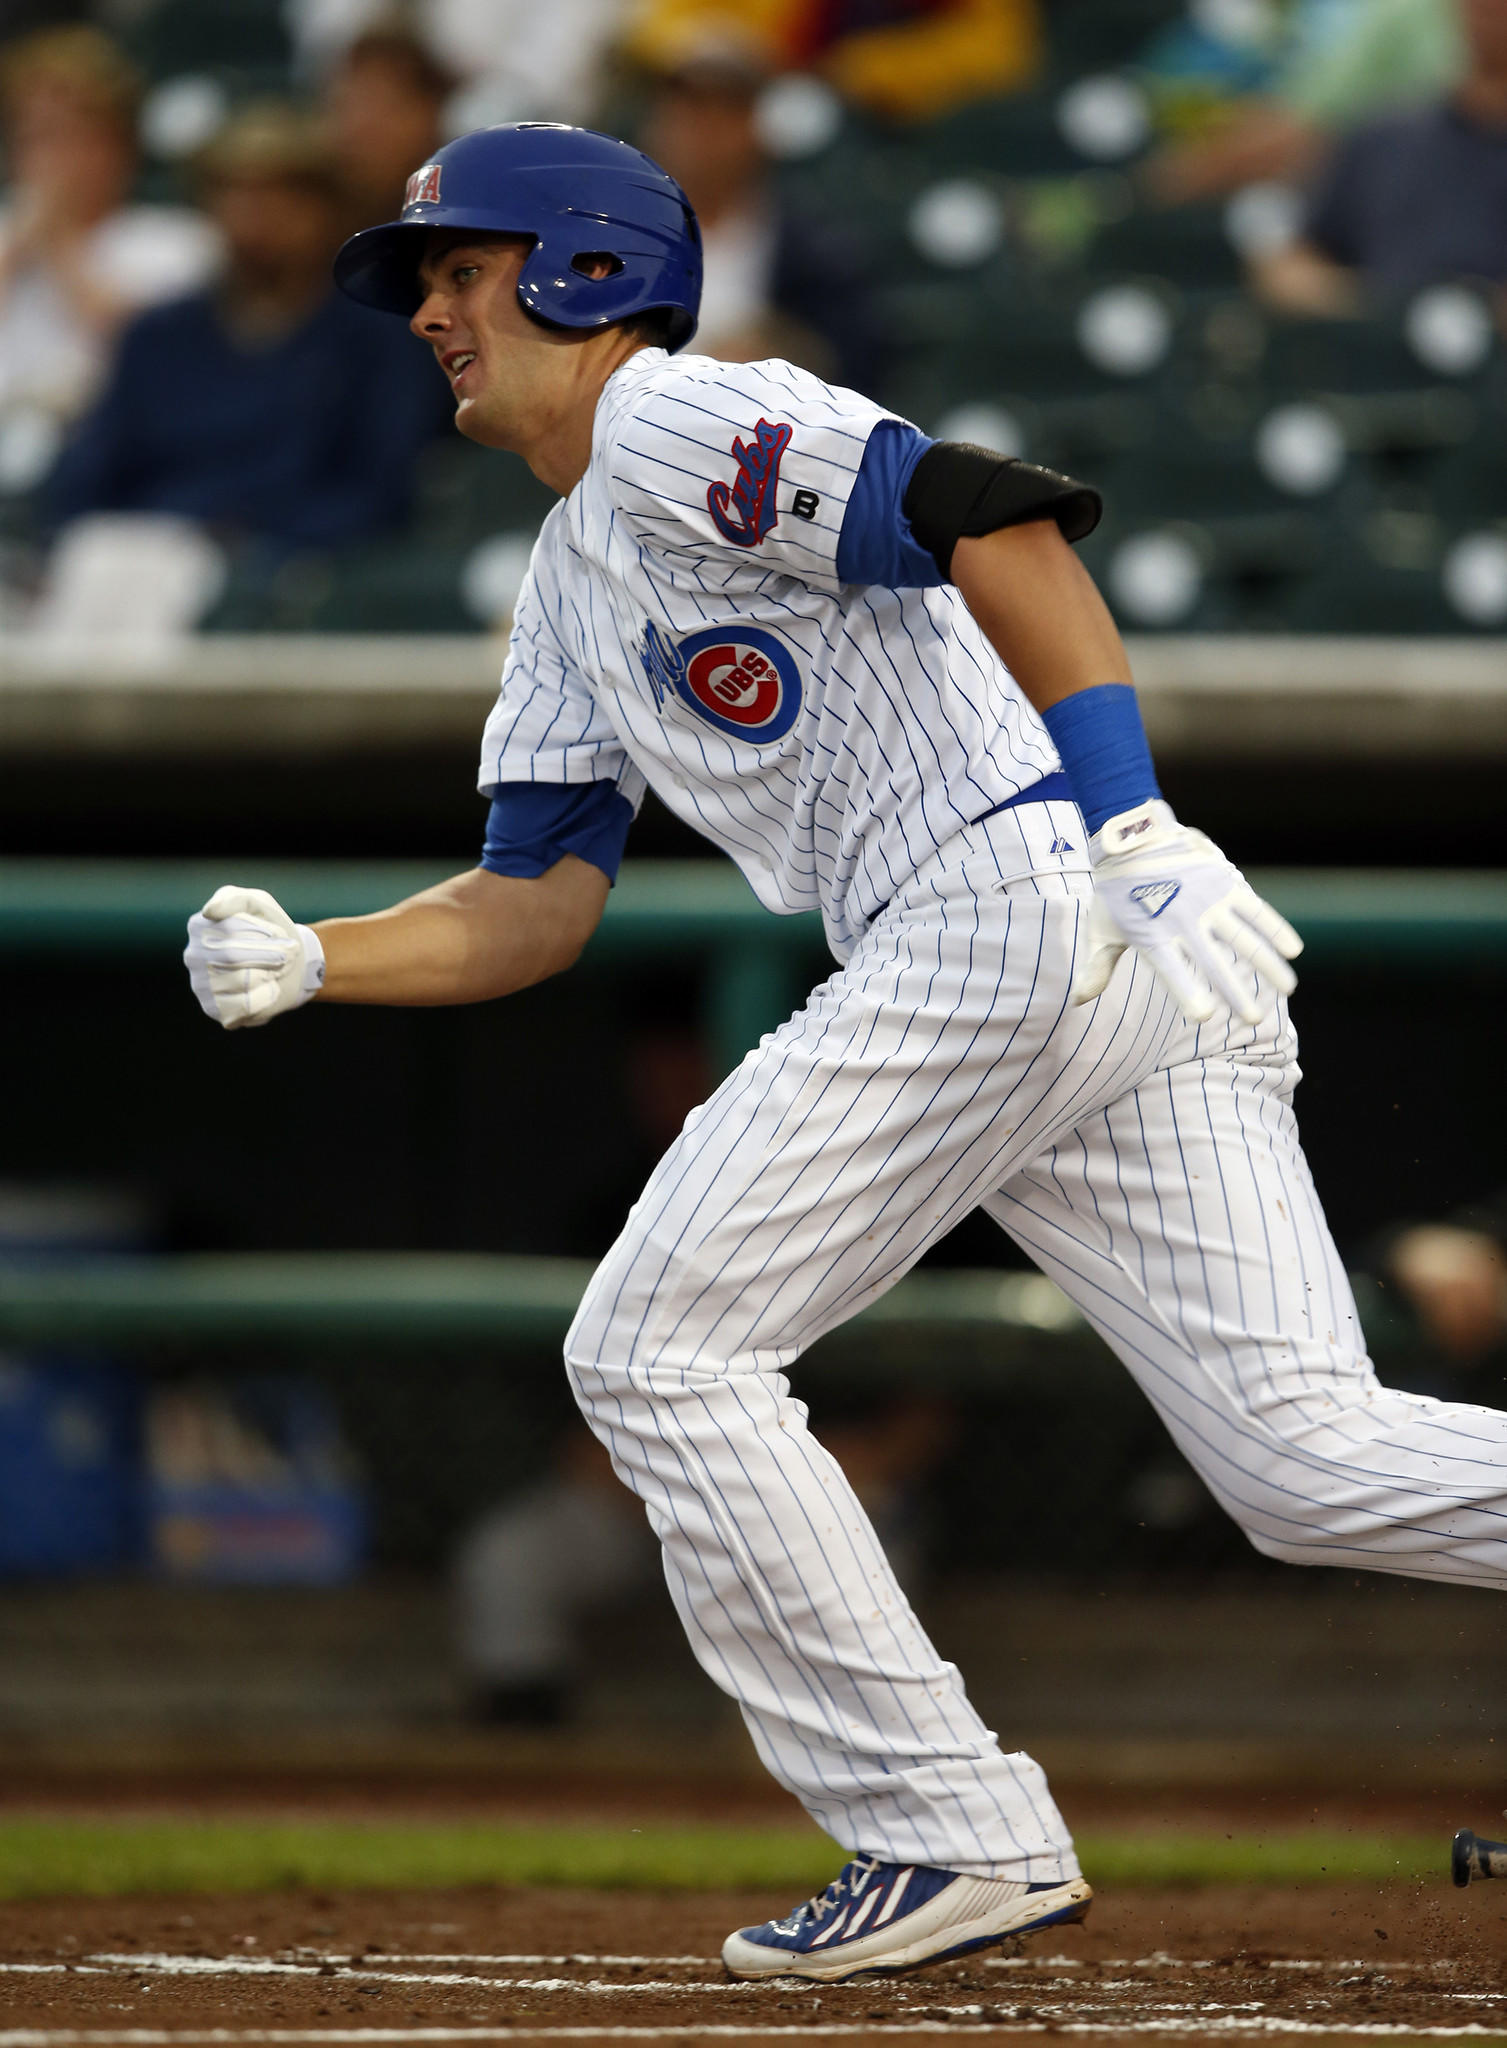 Cubs prospect Kris Bryant leaves the batter's box during a recent game in Iowa.